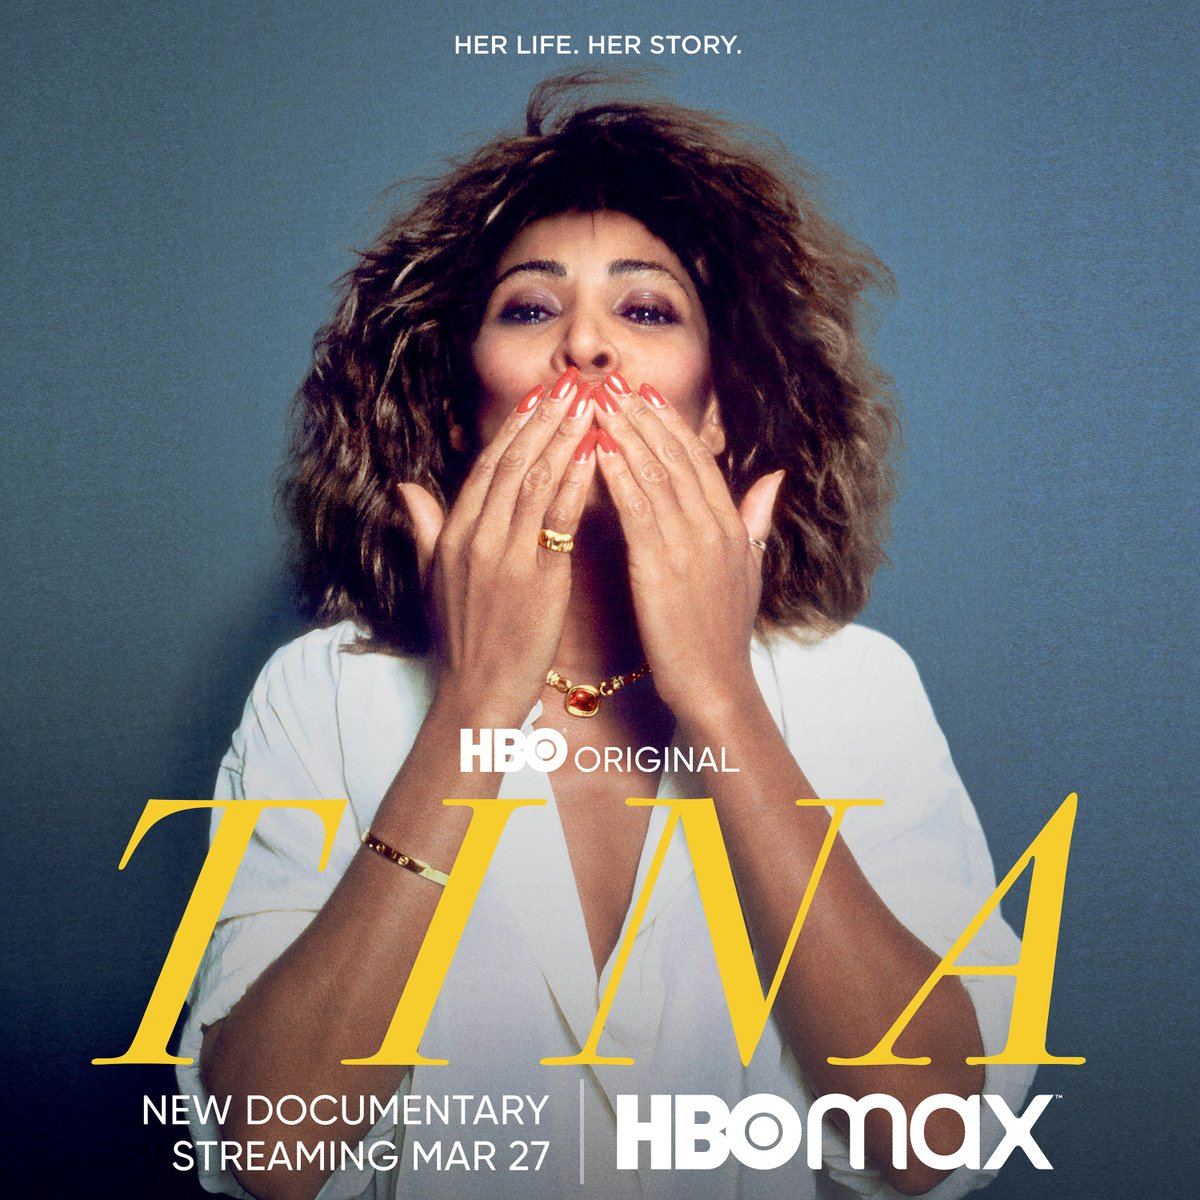 My life. My story. I am thrilled to share the official US #TinaFilm artwork! Premieres March 27 on @hbomax